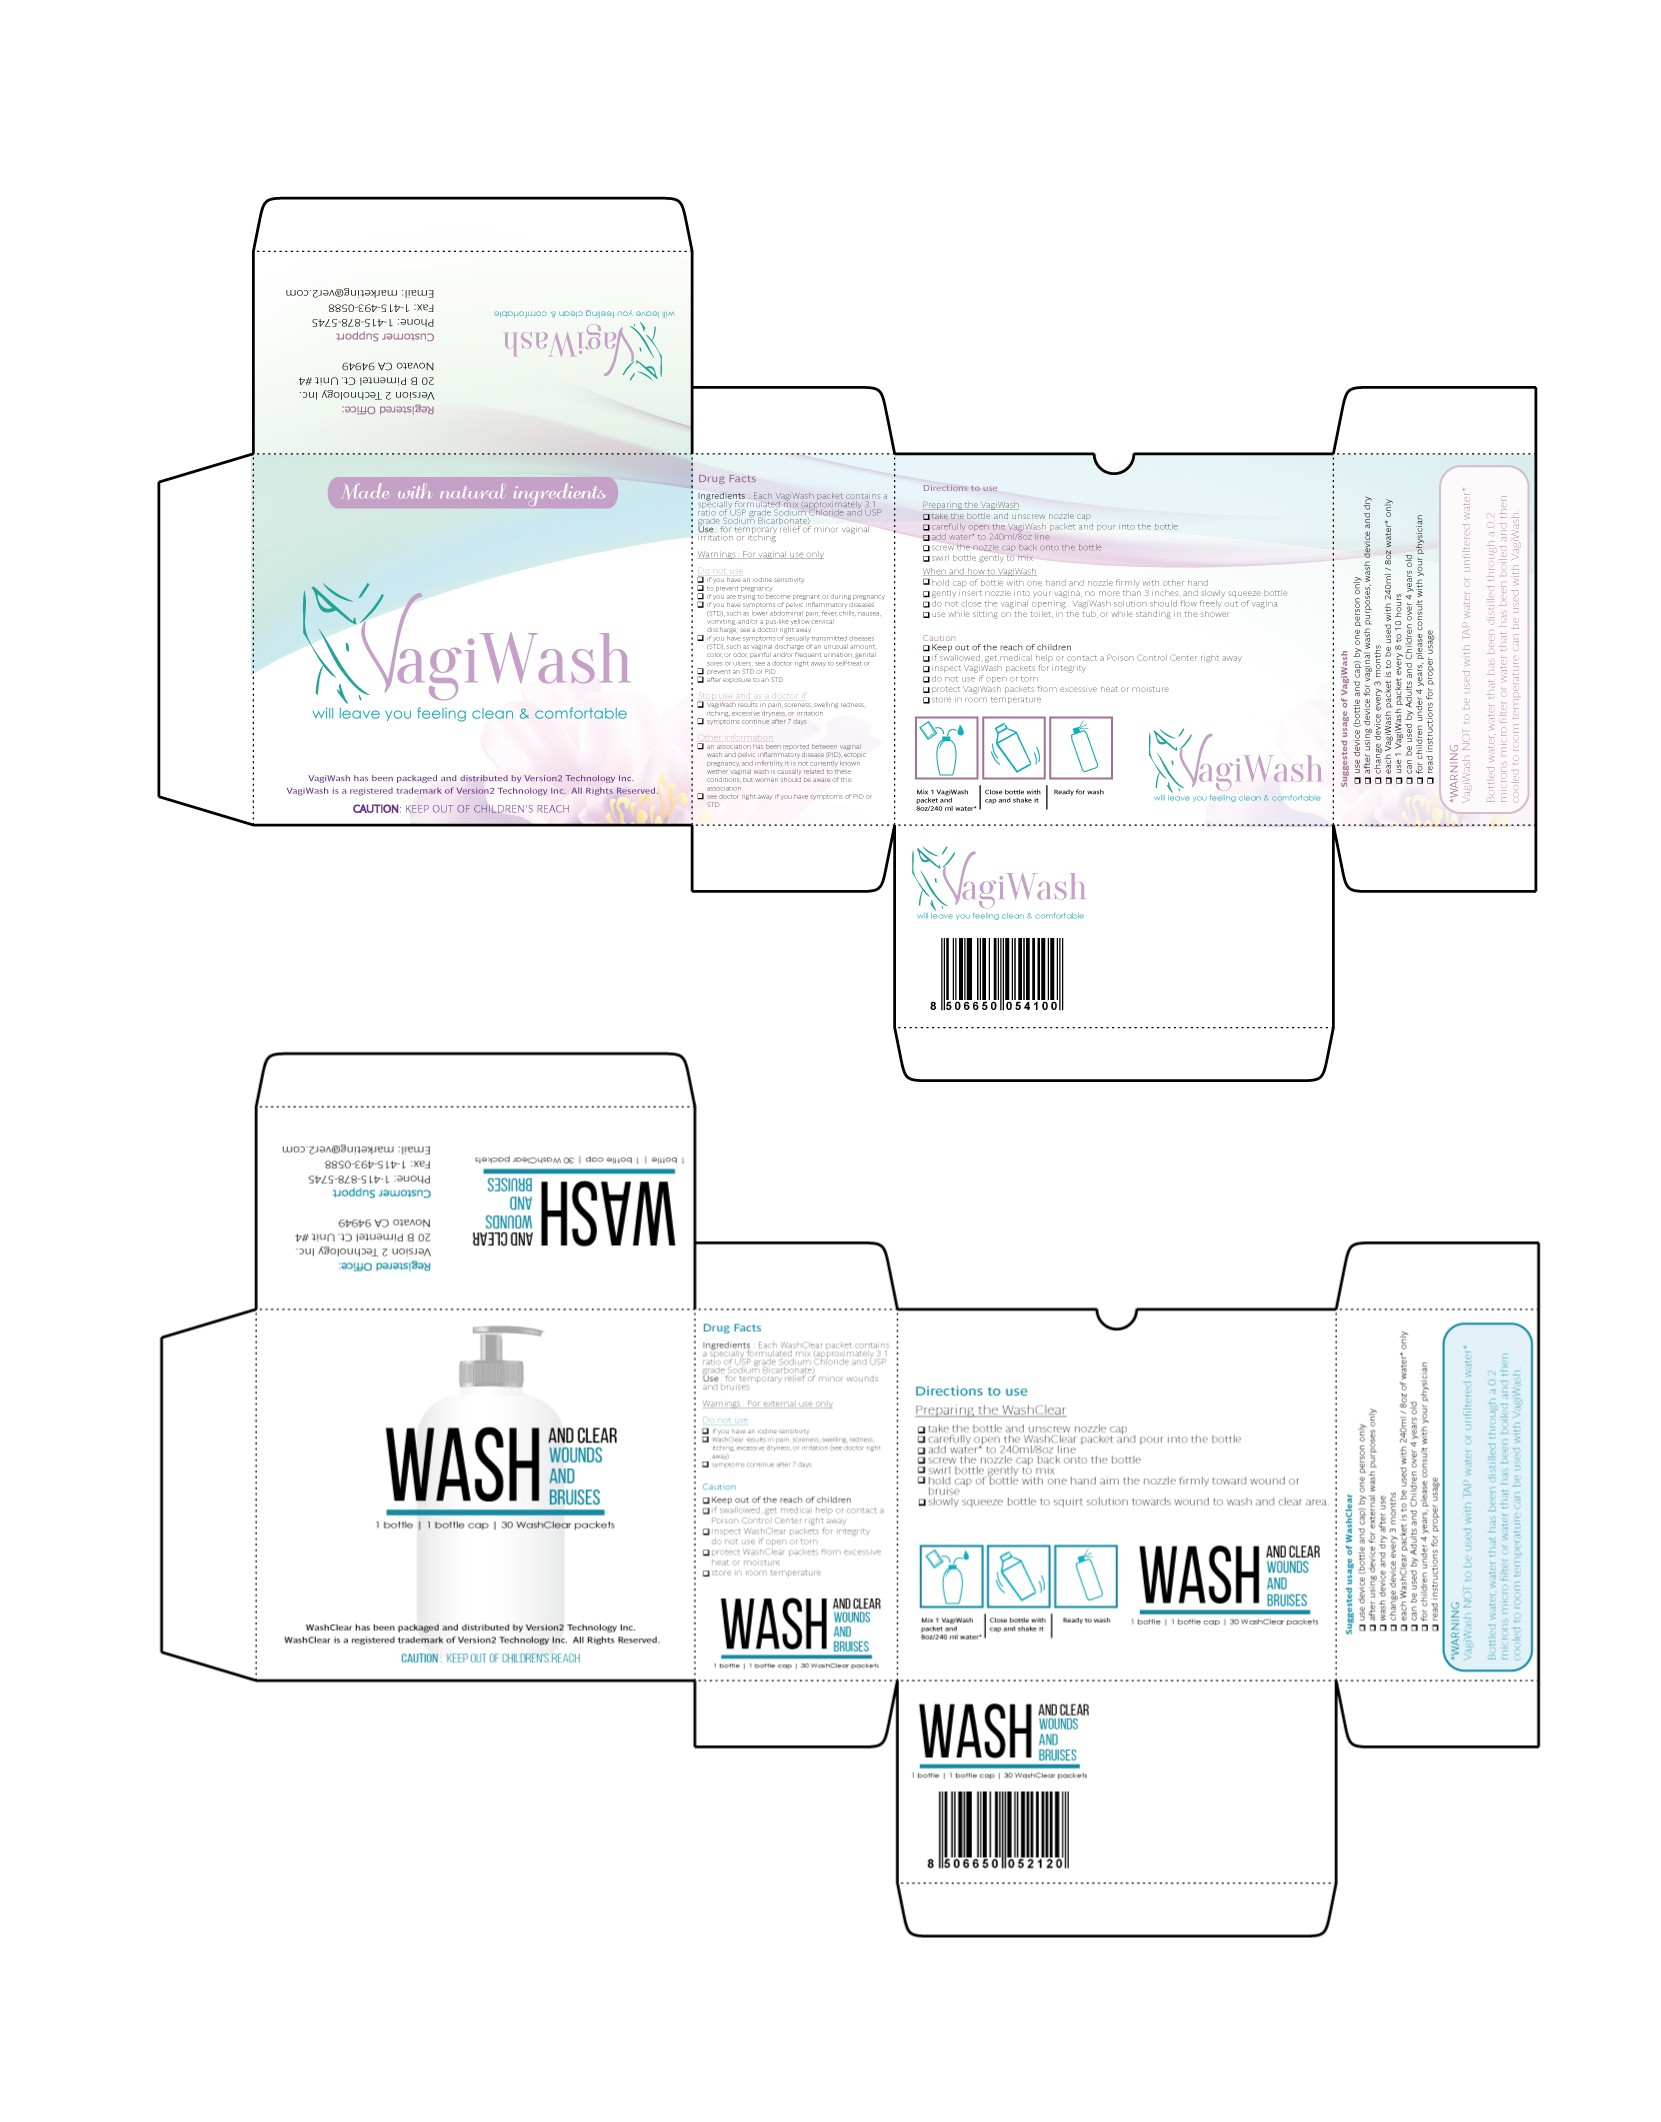 Create a capturing product package for Vaginal Wash and Wound Wash